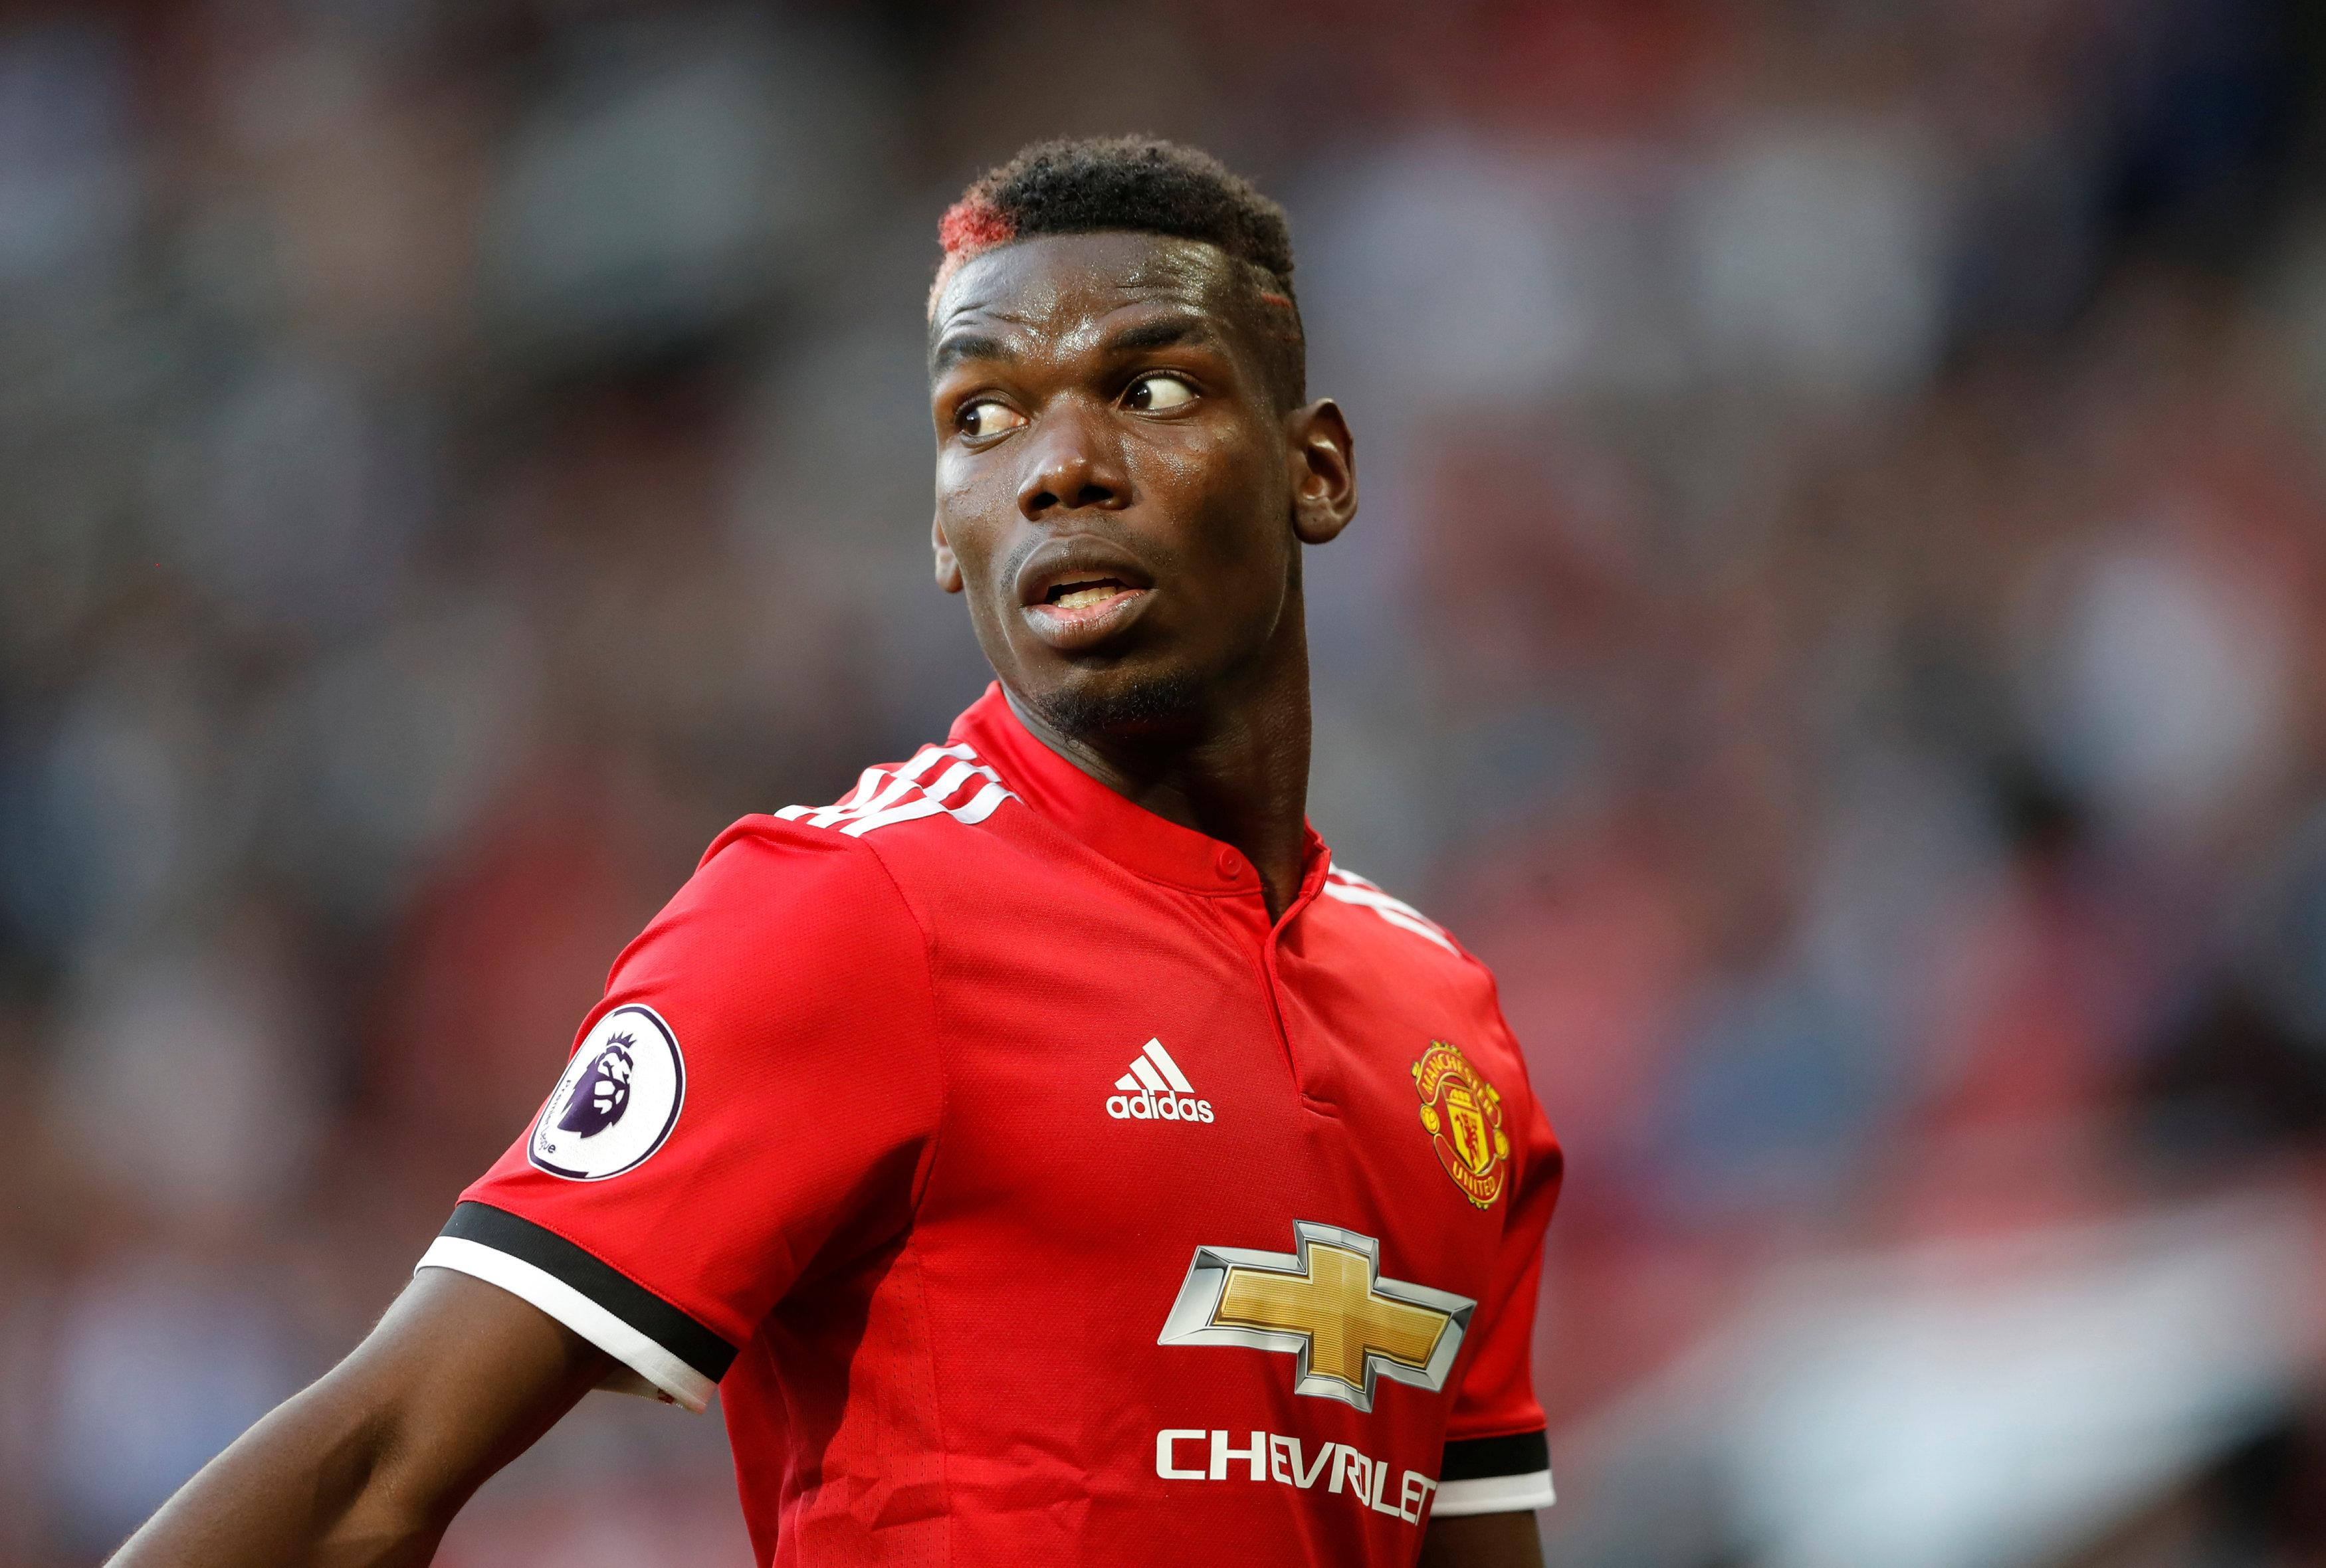 Man U Picture: Match Preview